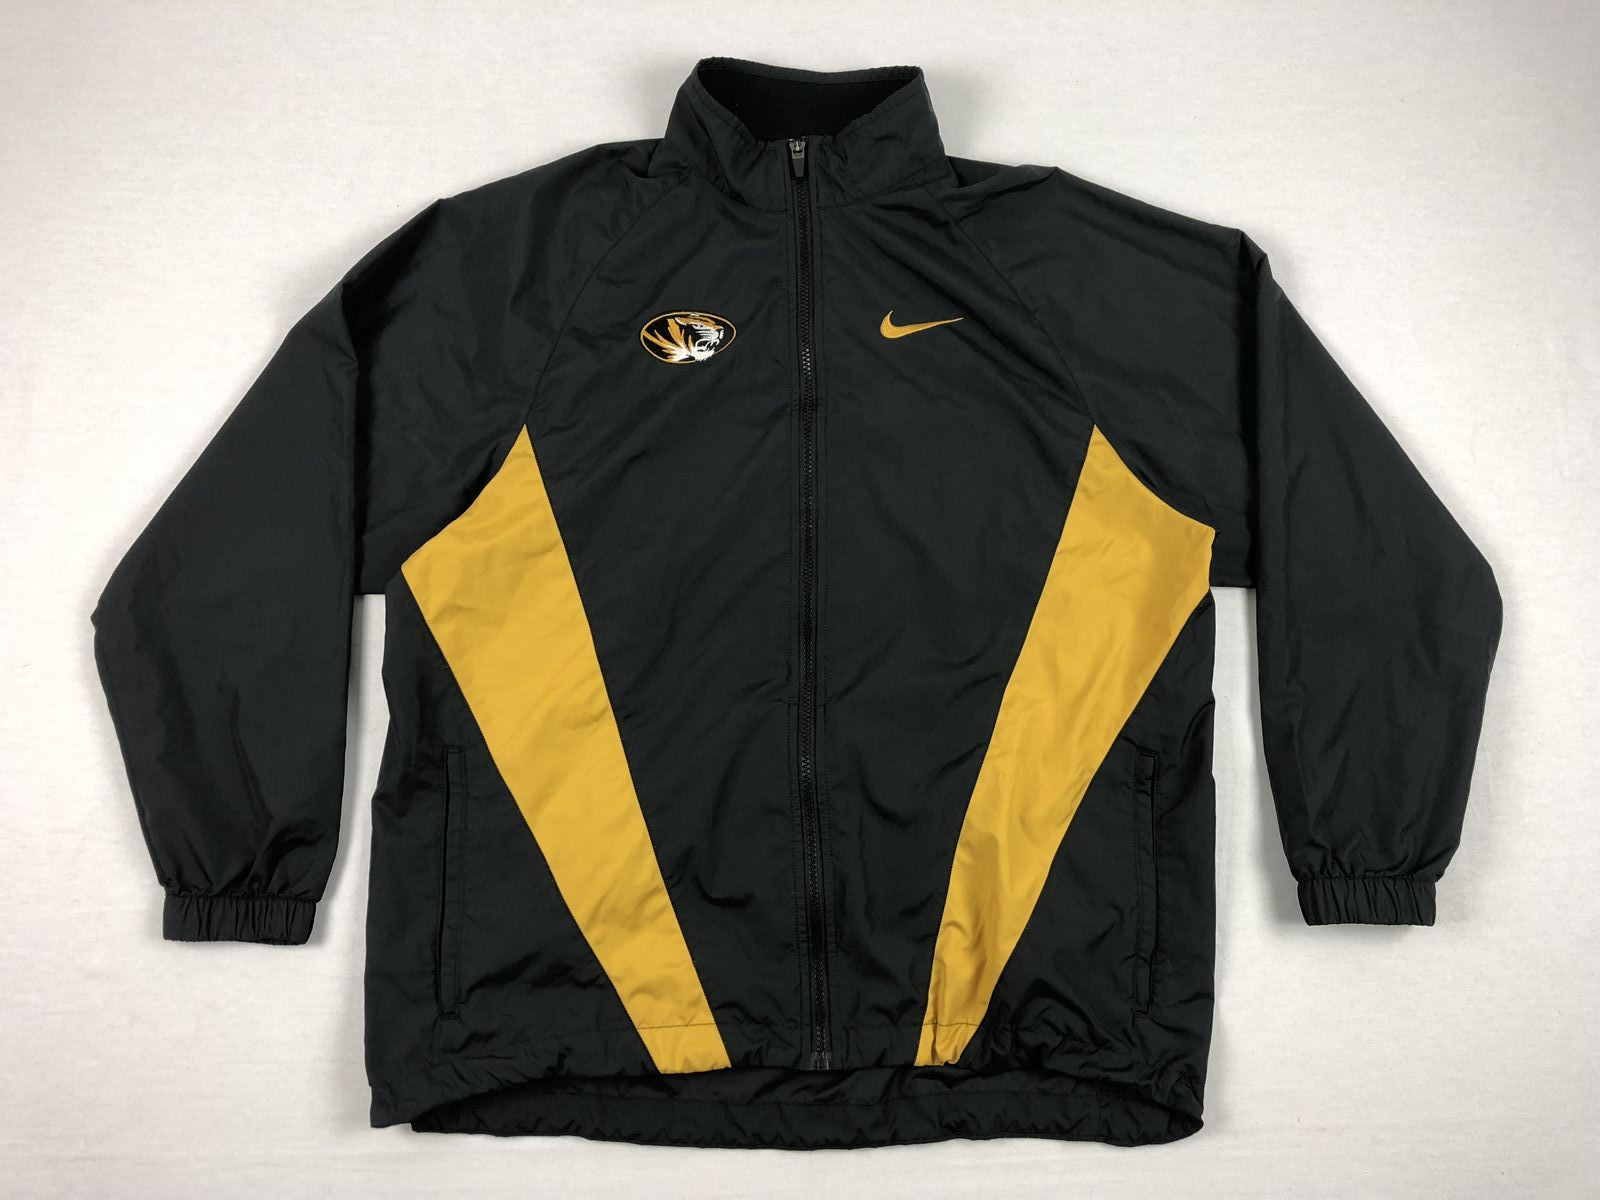 Details about Nike Missouri Tigers - Black Gold Poly Jacket (Multiple  Sizes) - Used 0f6fdb817